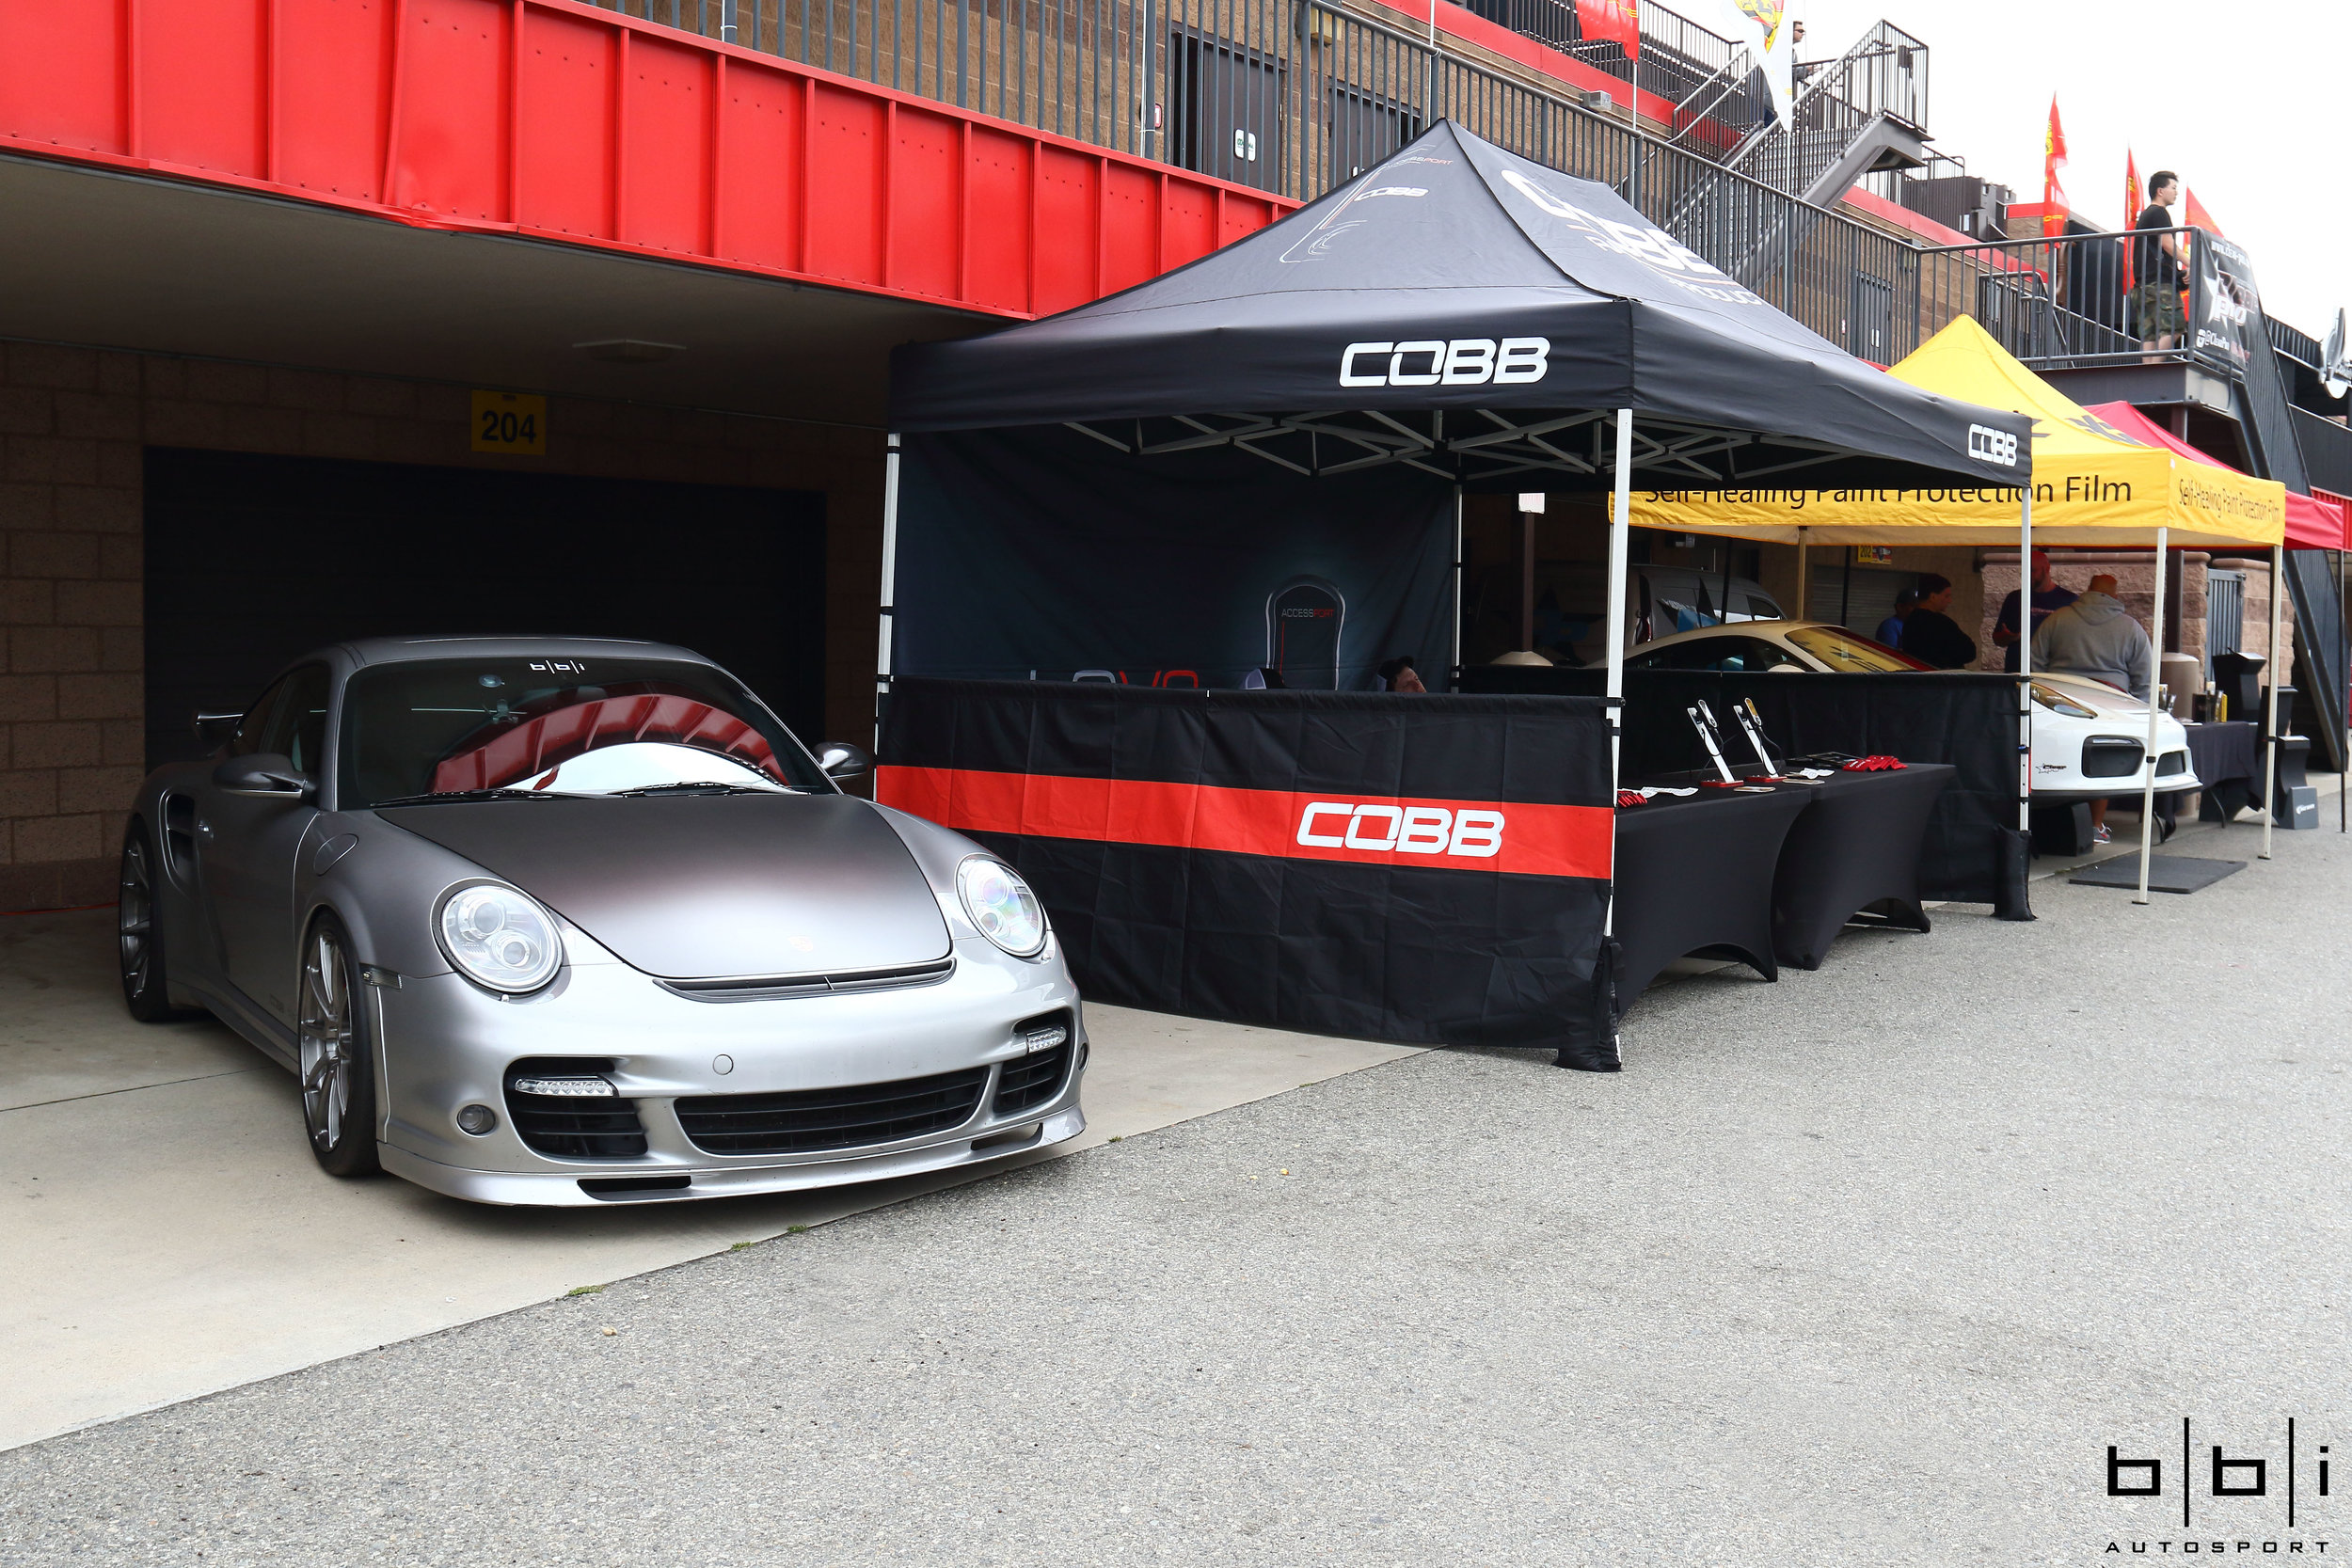 Cobb Tuning Booth with Porsche 997.1 Turbo tuned by BBi Autosport